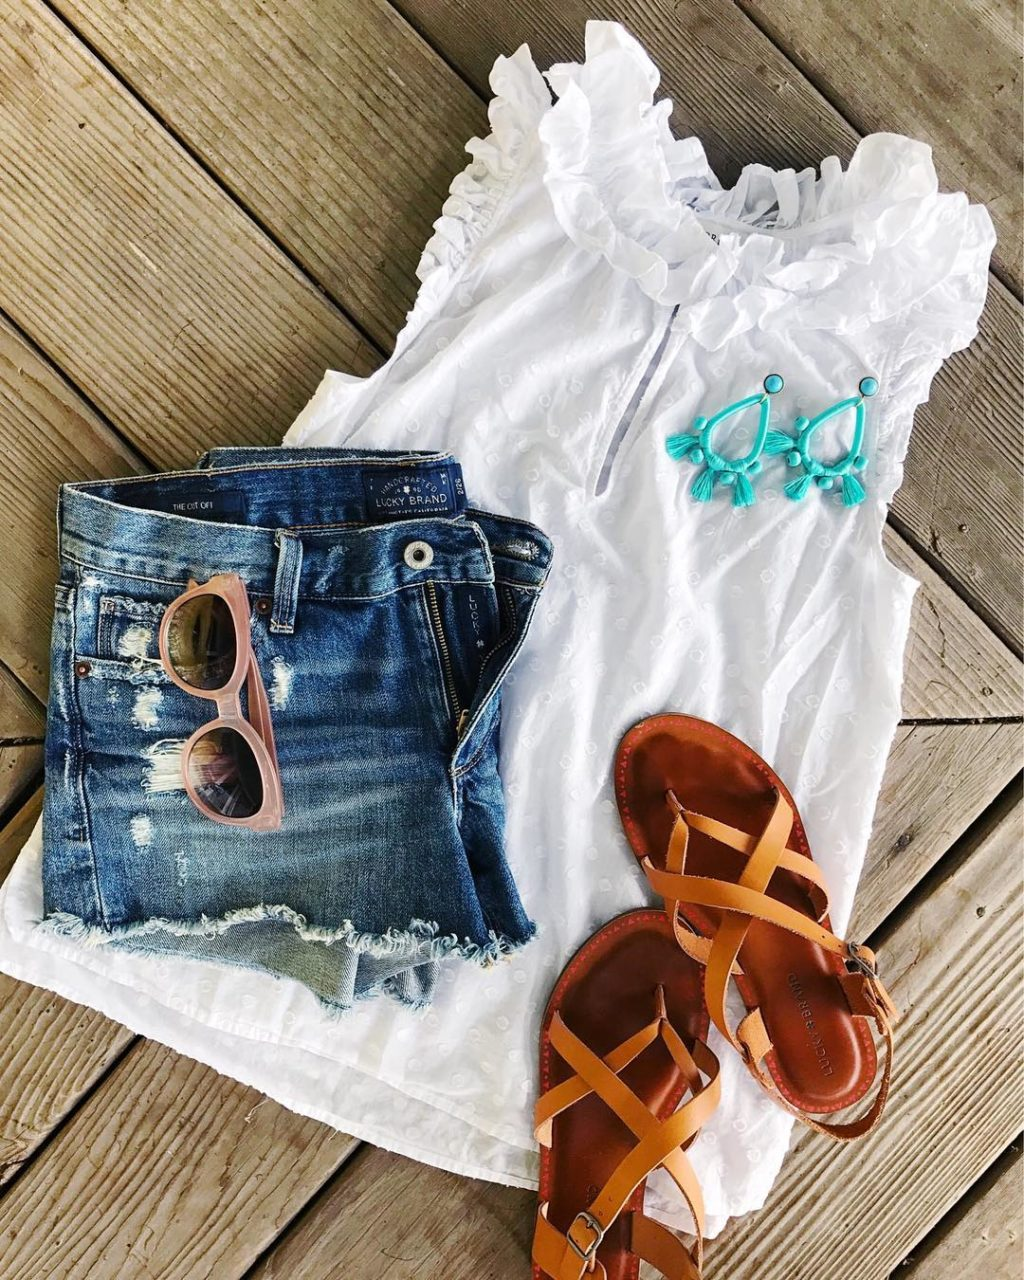 jcrew ruffle top outfit